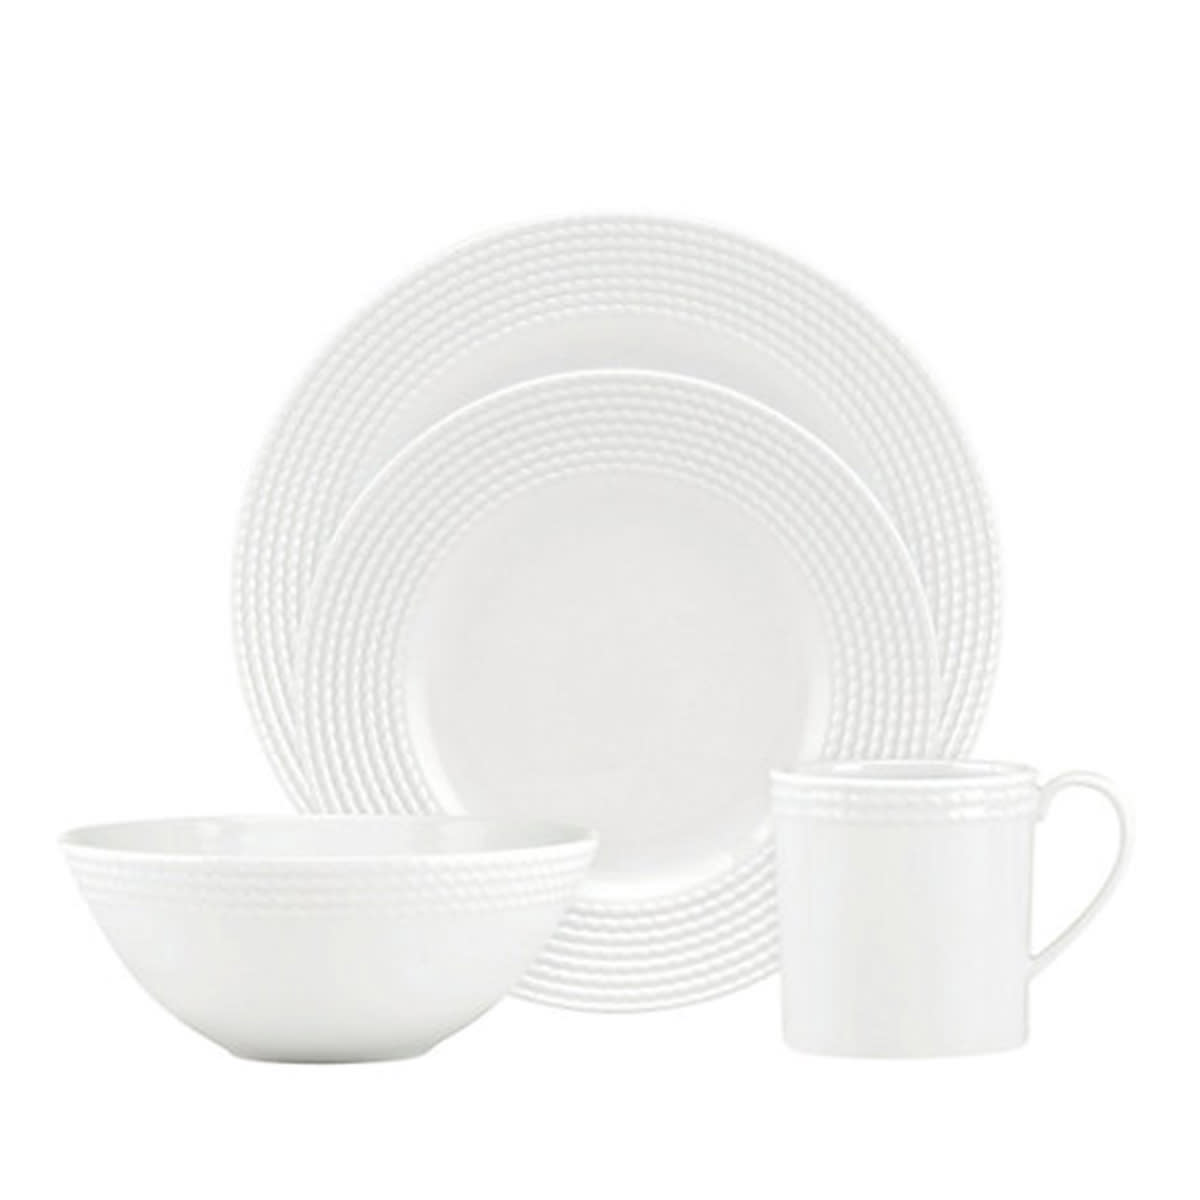 6 Dinnerware Sets That Will Outlast Your Design Whims: gallery image 7